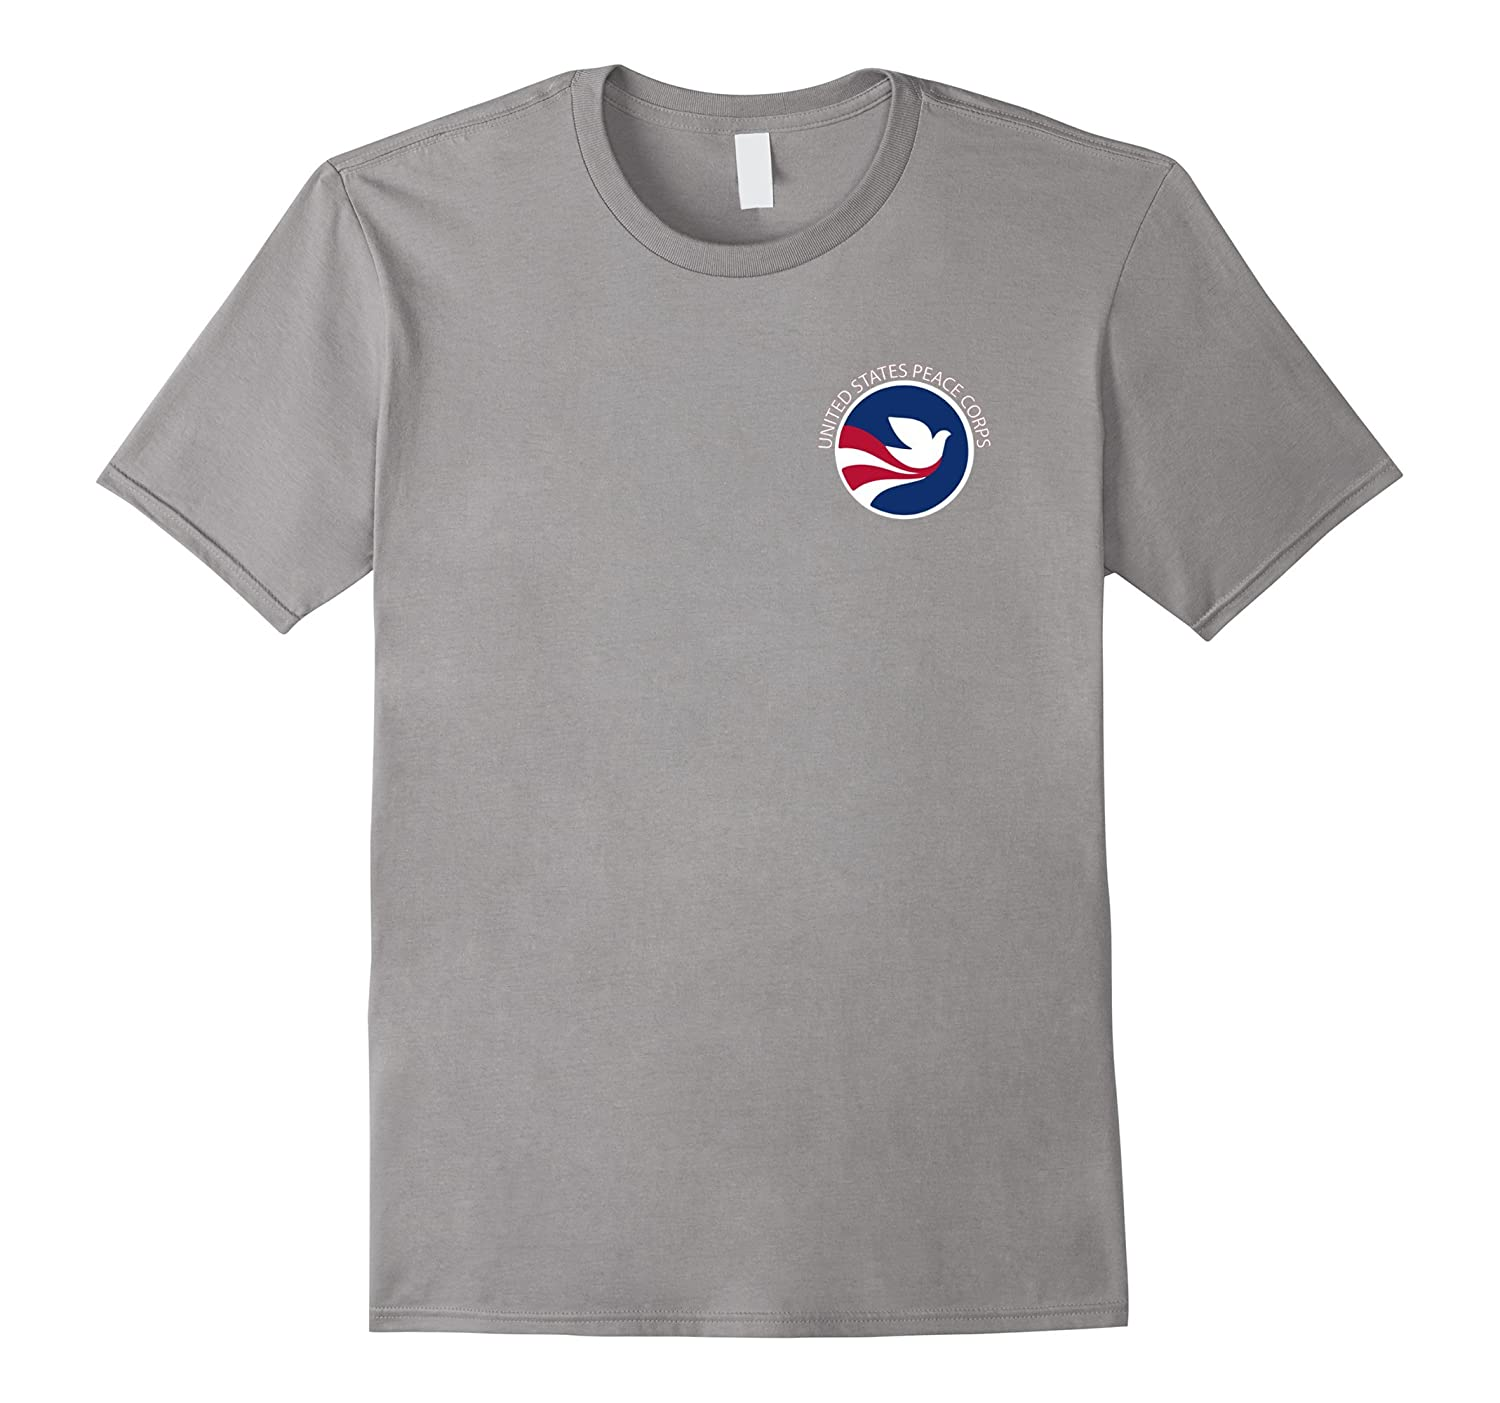 PEACE CORPS NEW LOGO T-SHIRT US PEACE CORPS